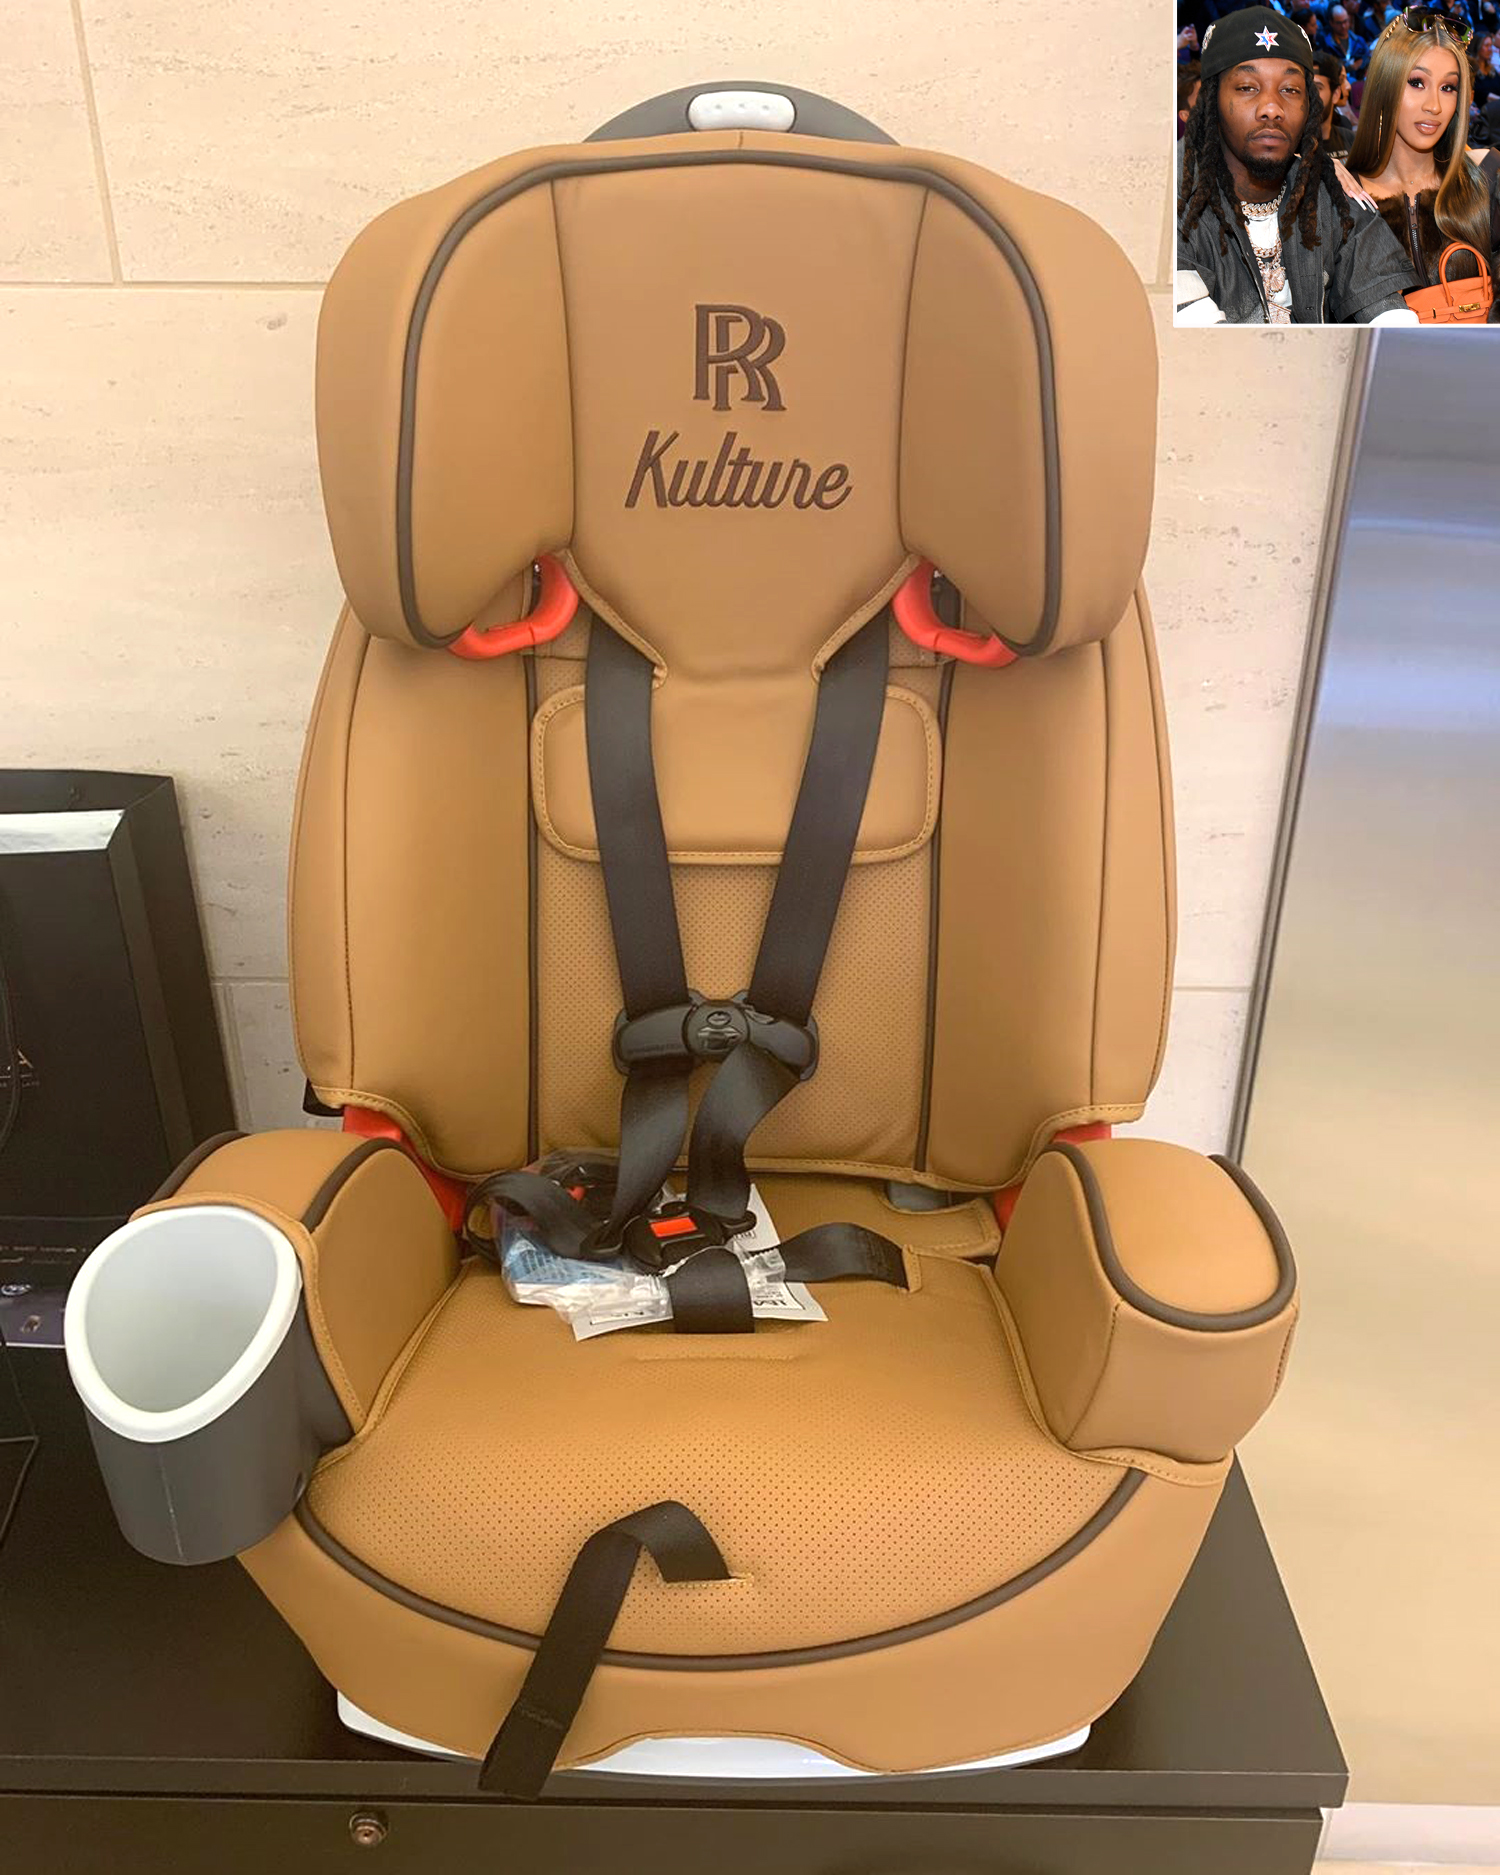 8 thousand dollar car seat and i bet it has peanut butter and jelly on it in 1 week